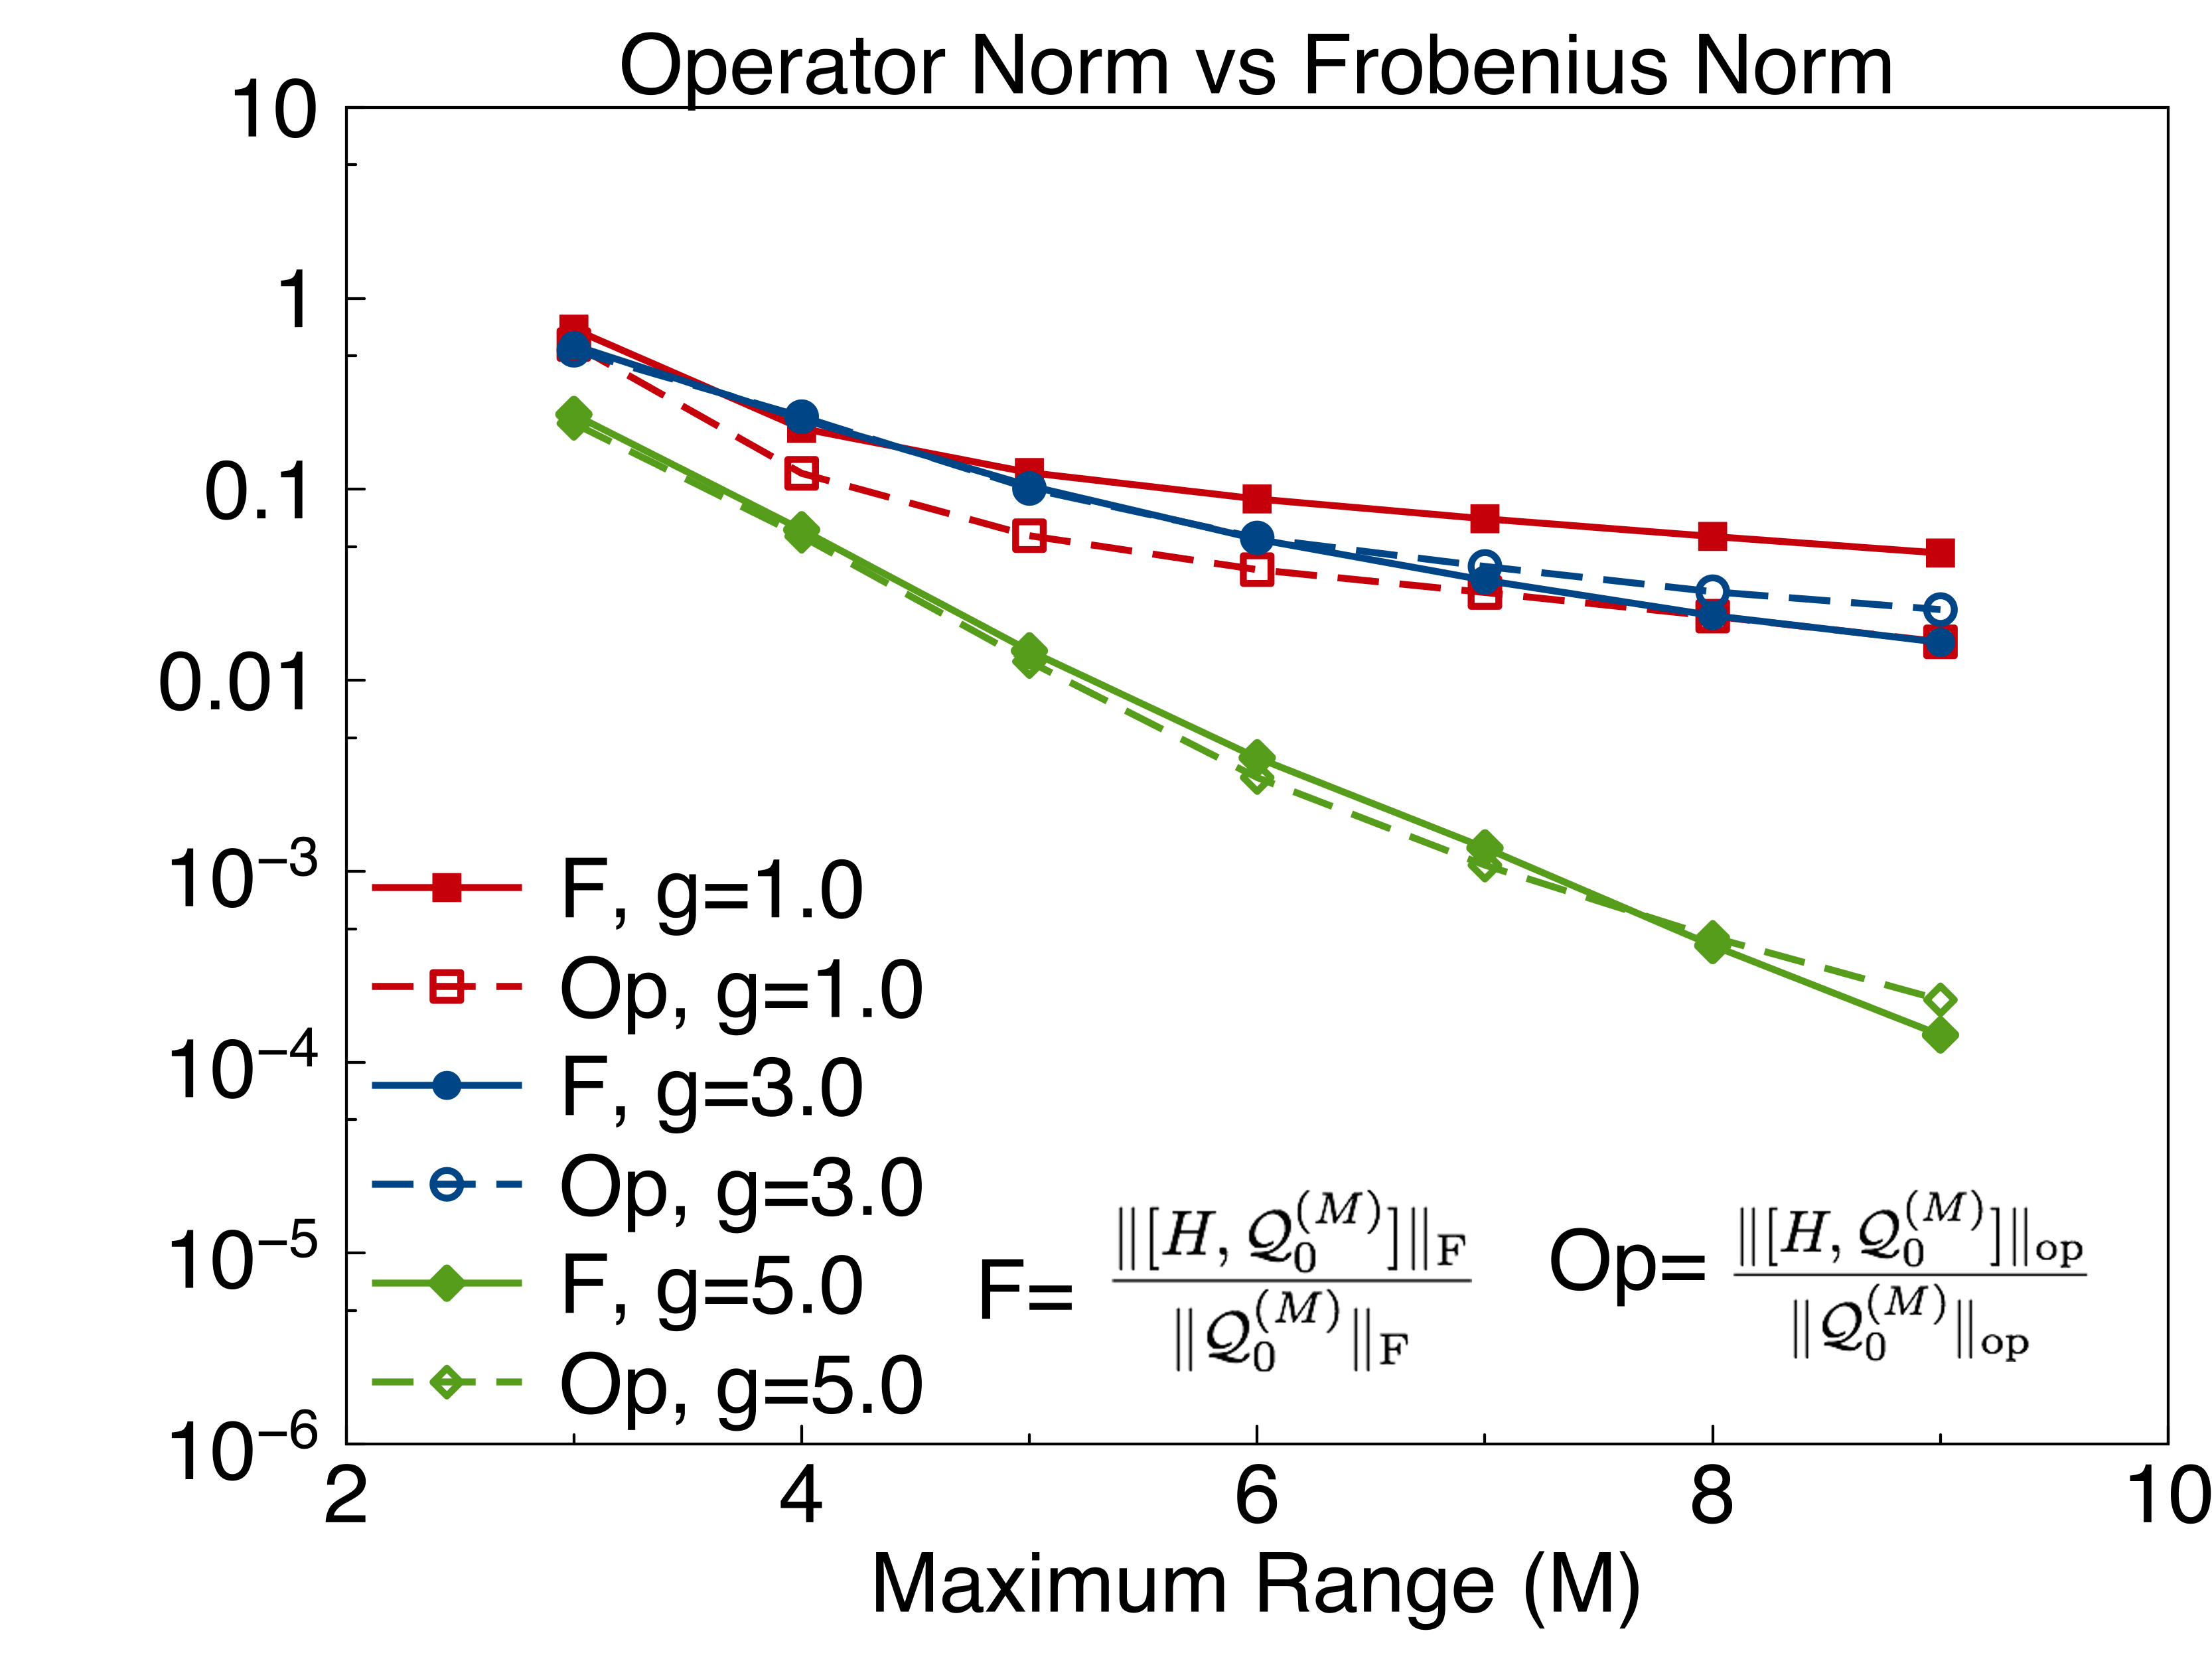 (color online) Comparison between the residual Frobenius norm and operator norm measures of the slowest operator